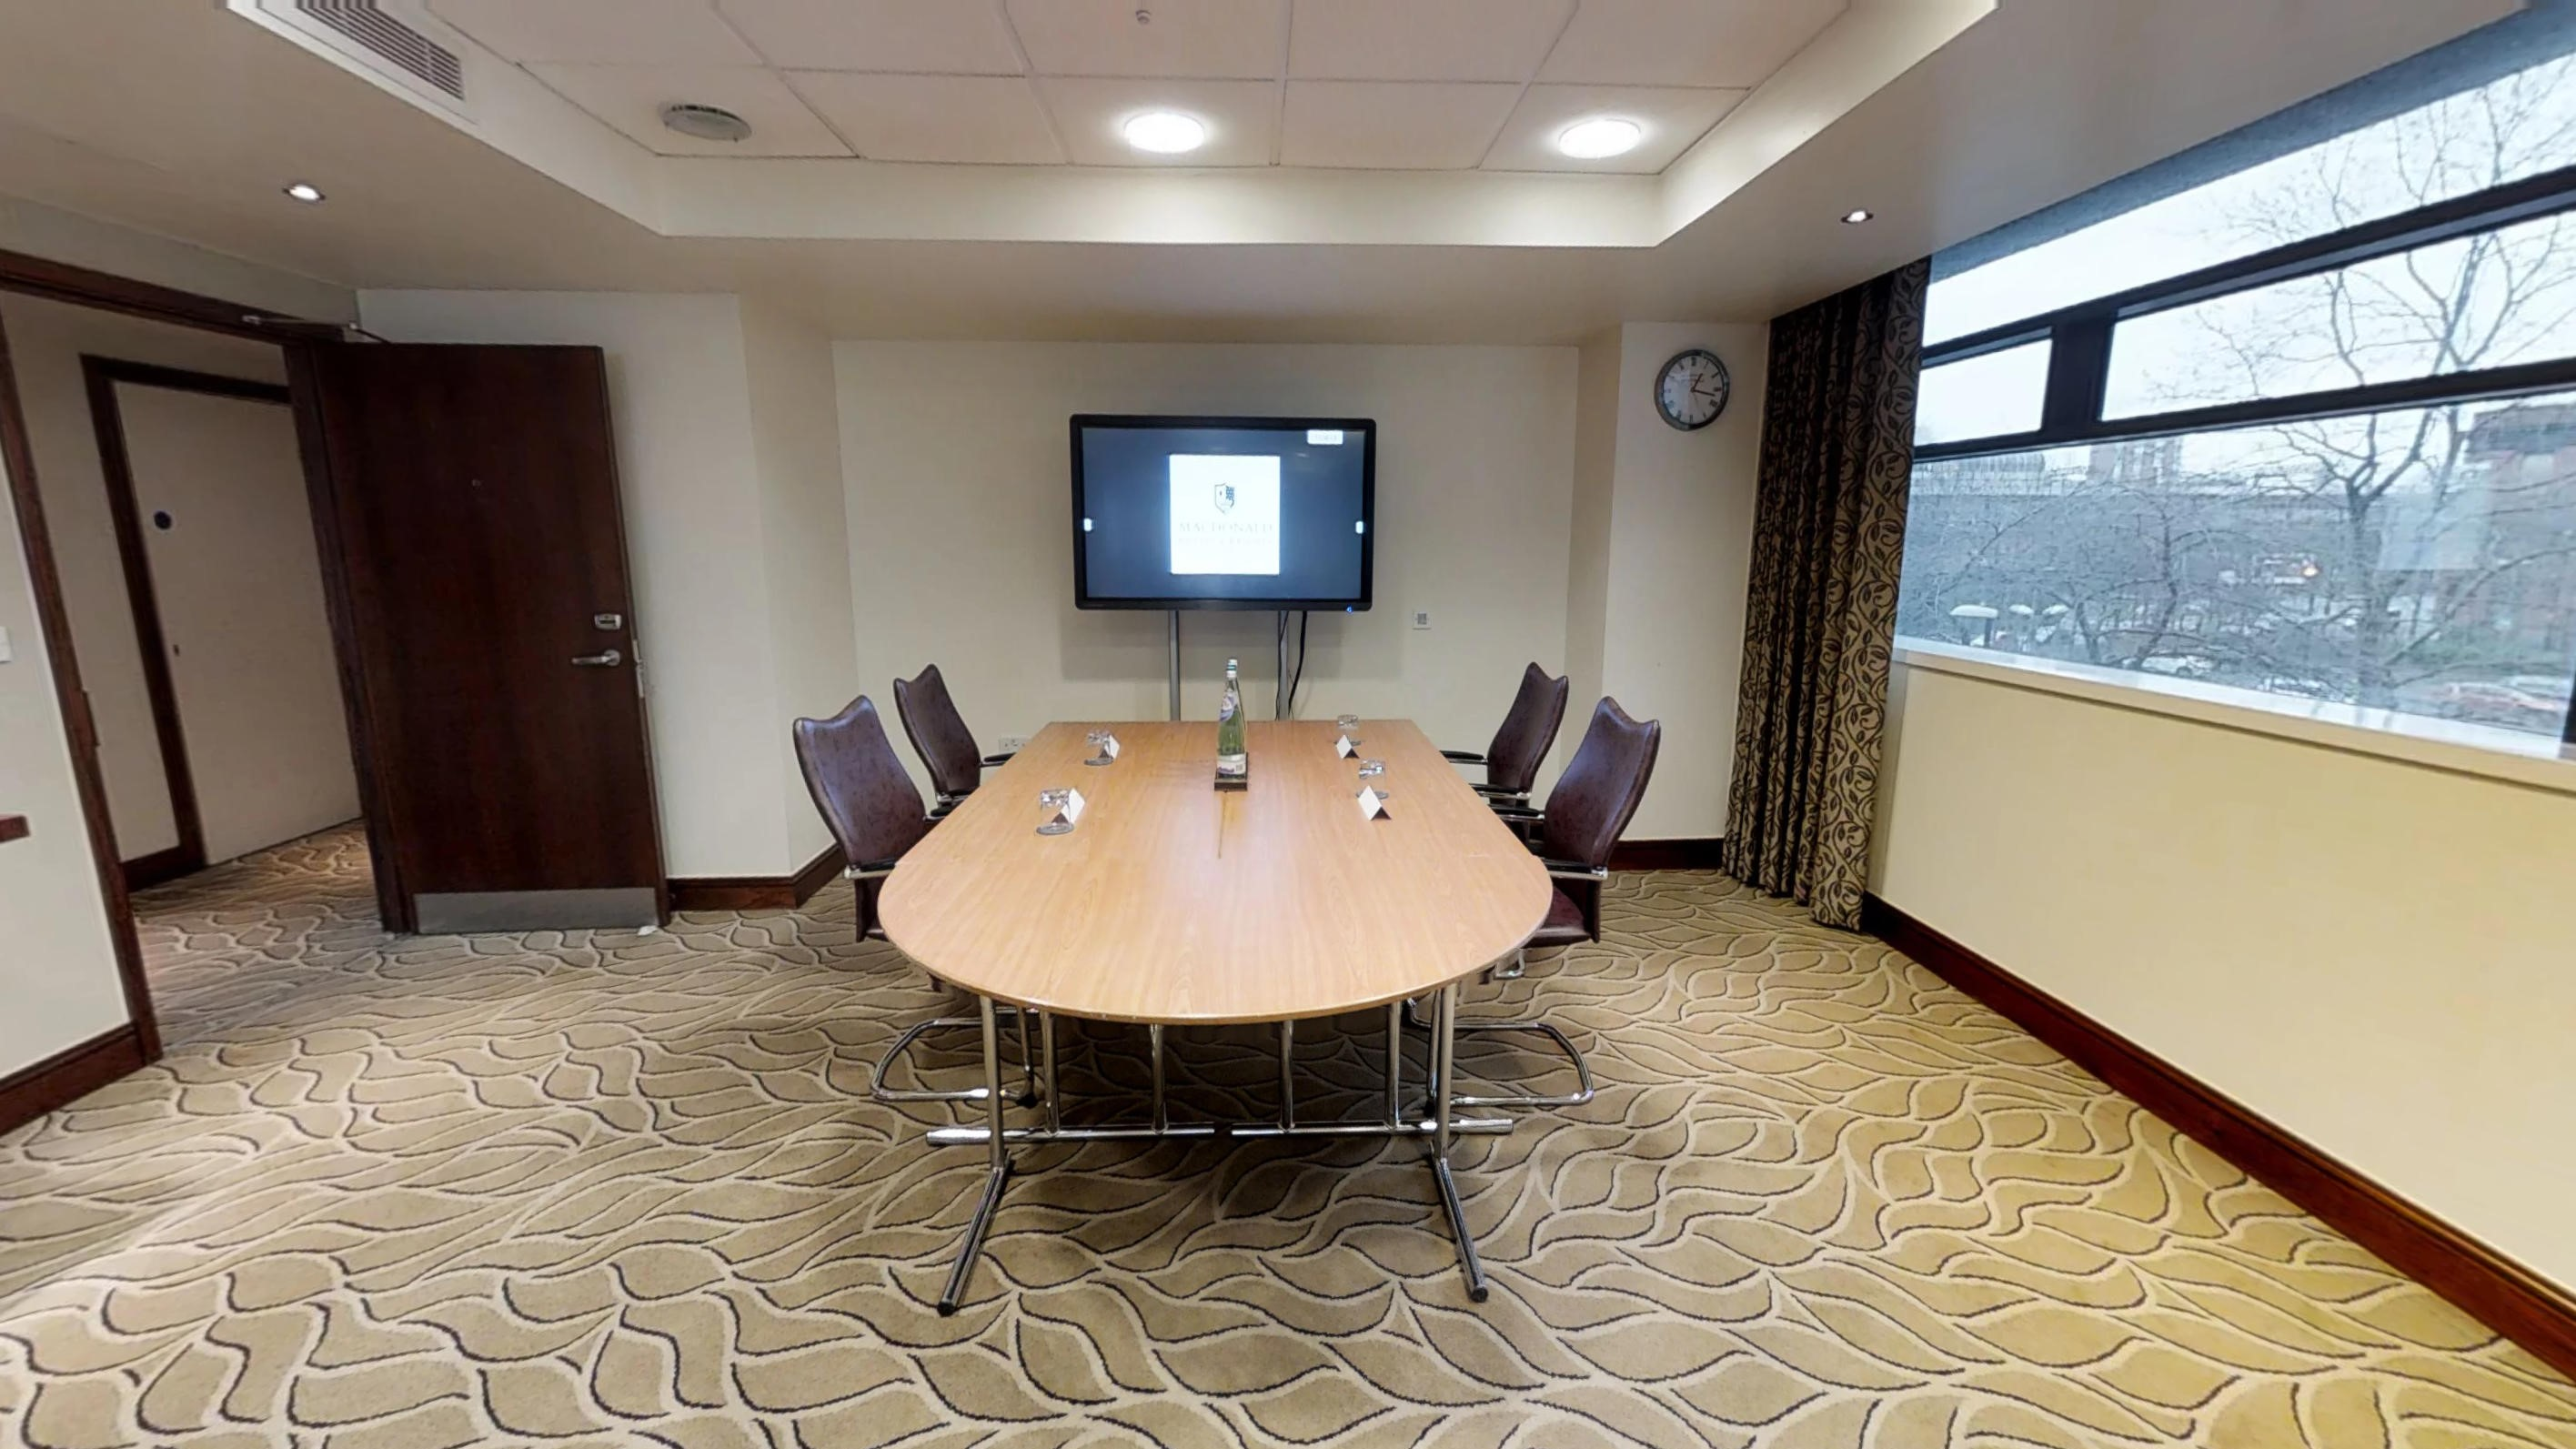 Meeting Room 2 & 4 Configurations